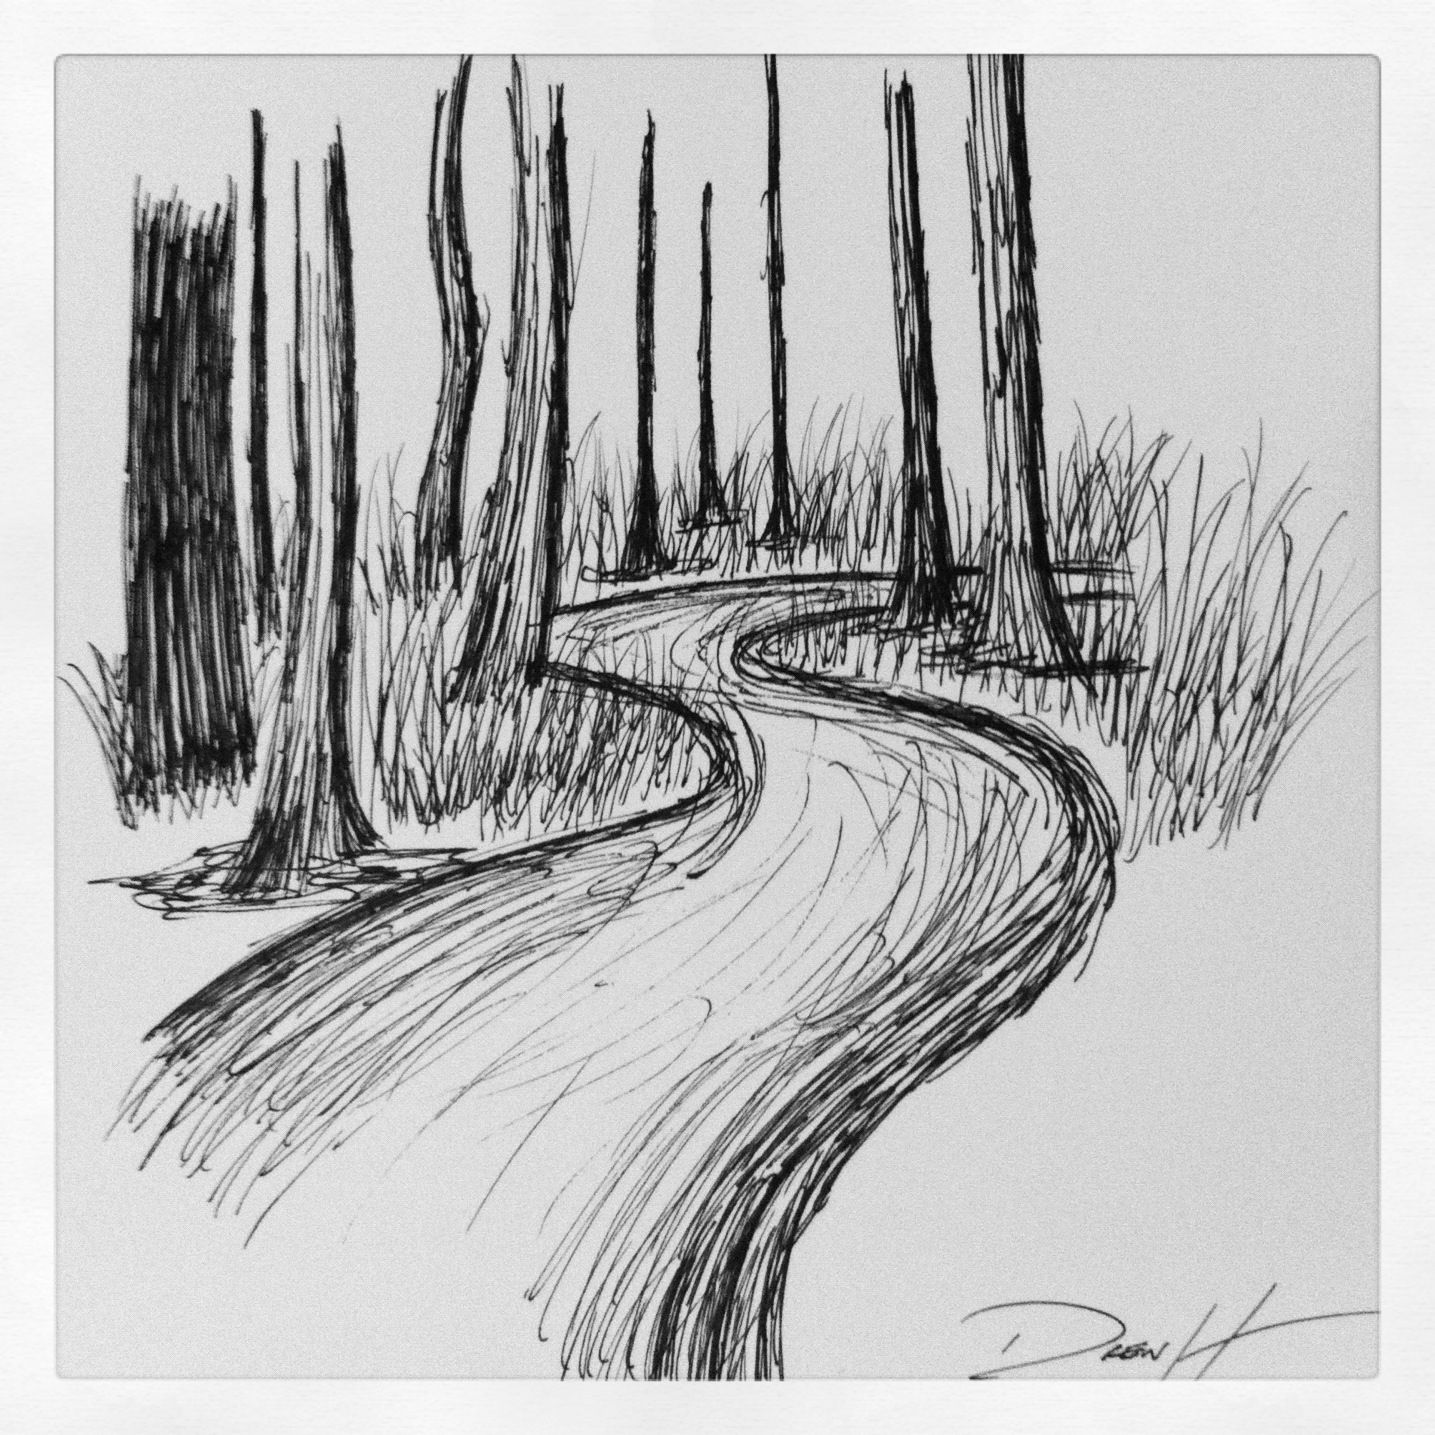 Newest Drawing Nature Sketch Nature Drawing Pen Sketch